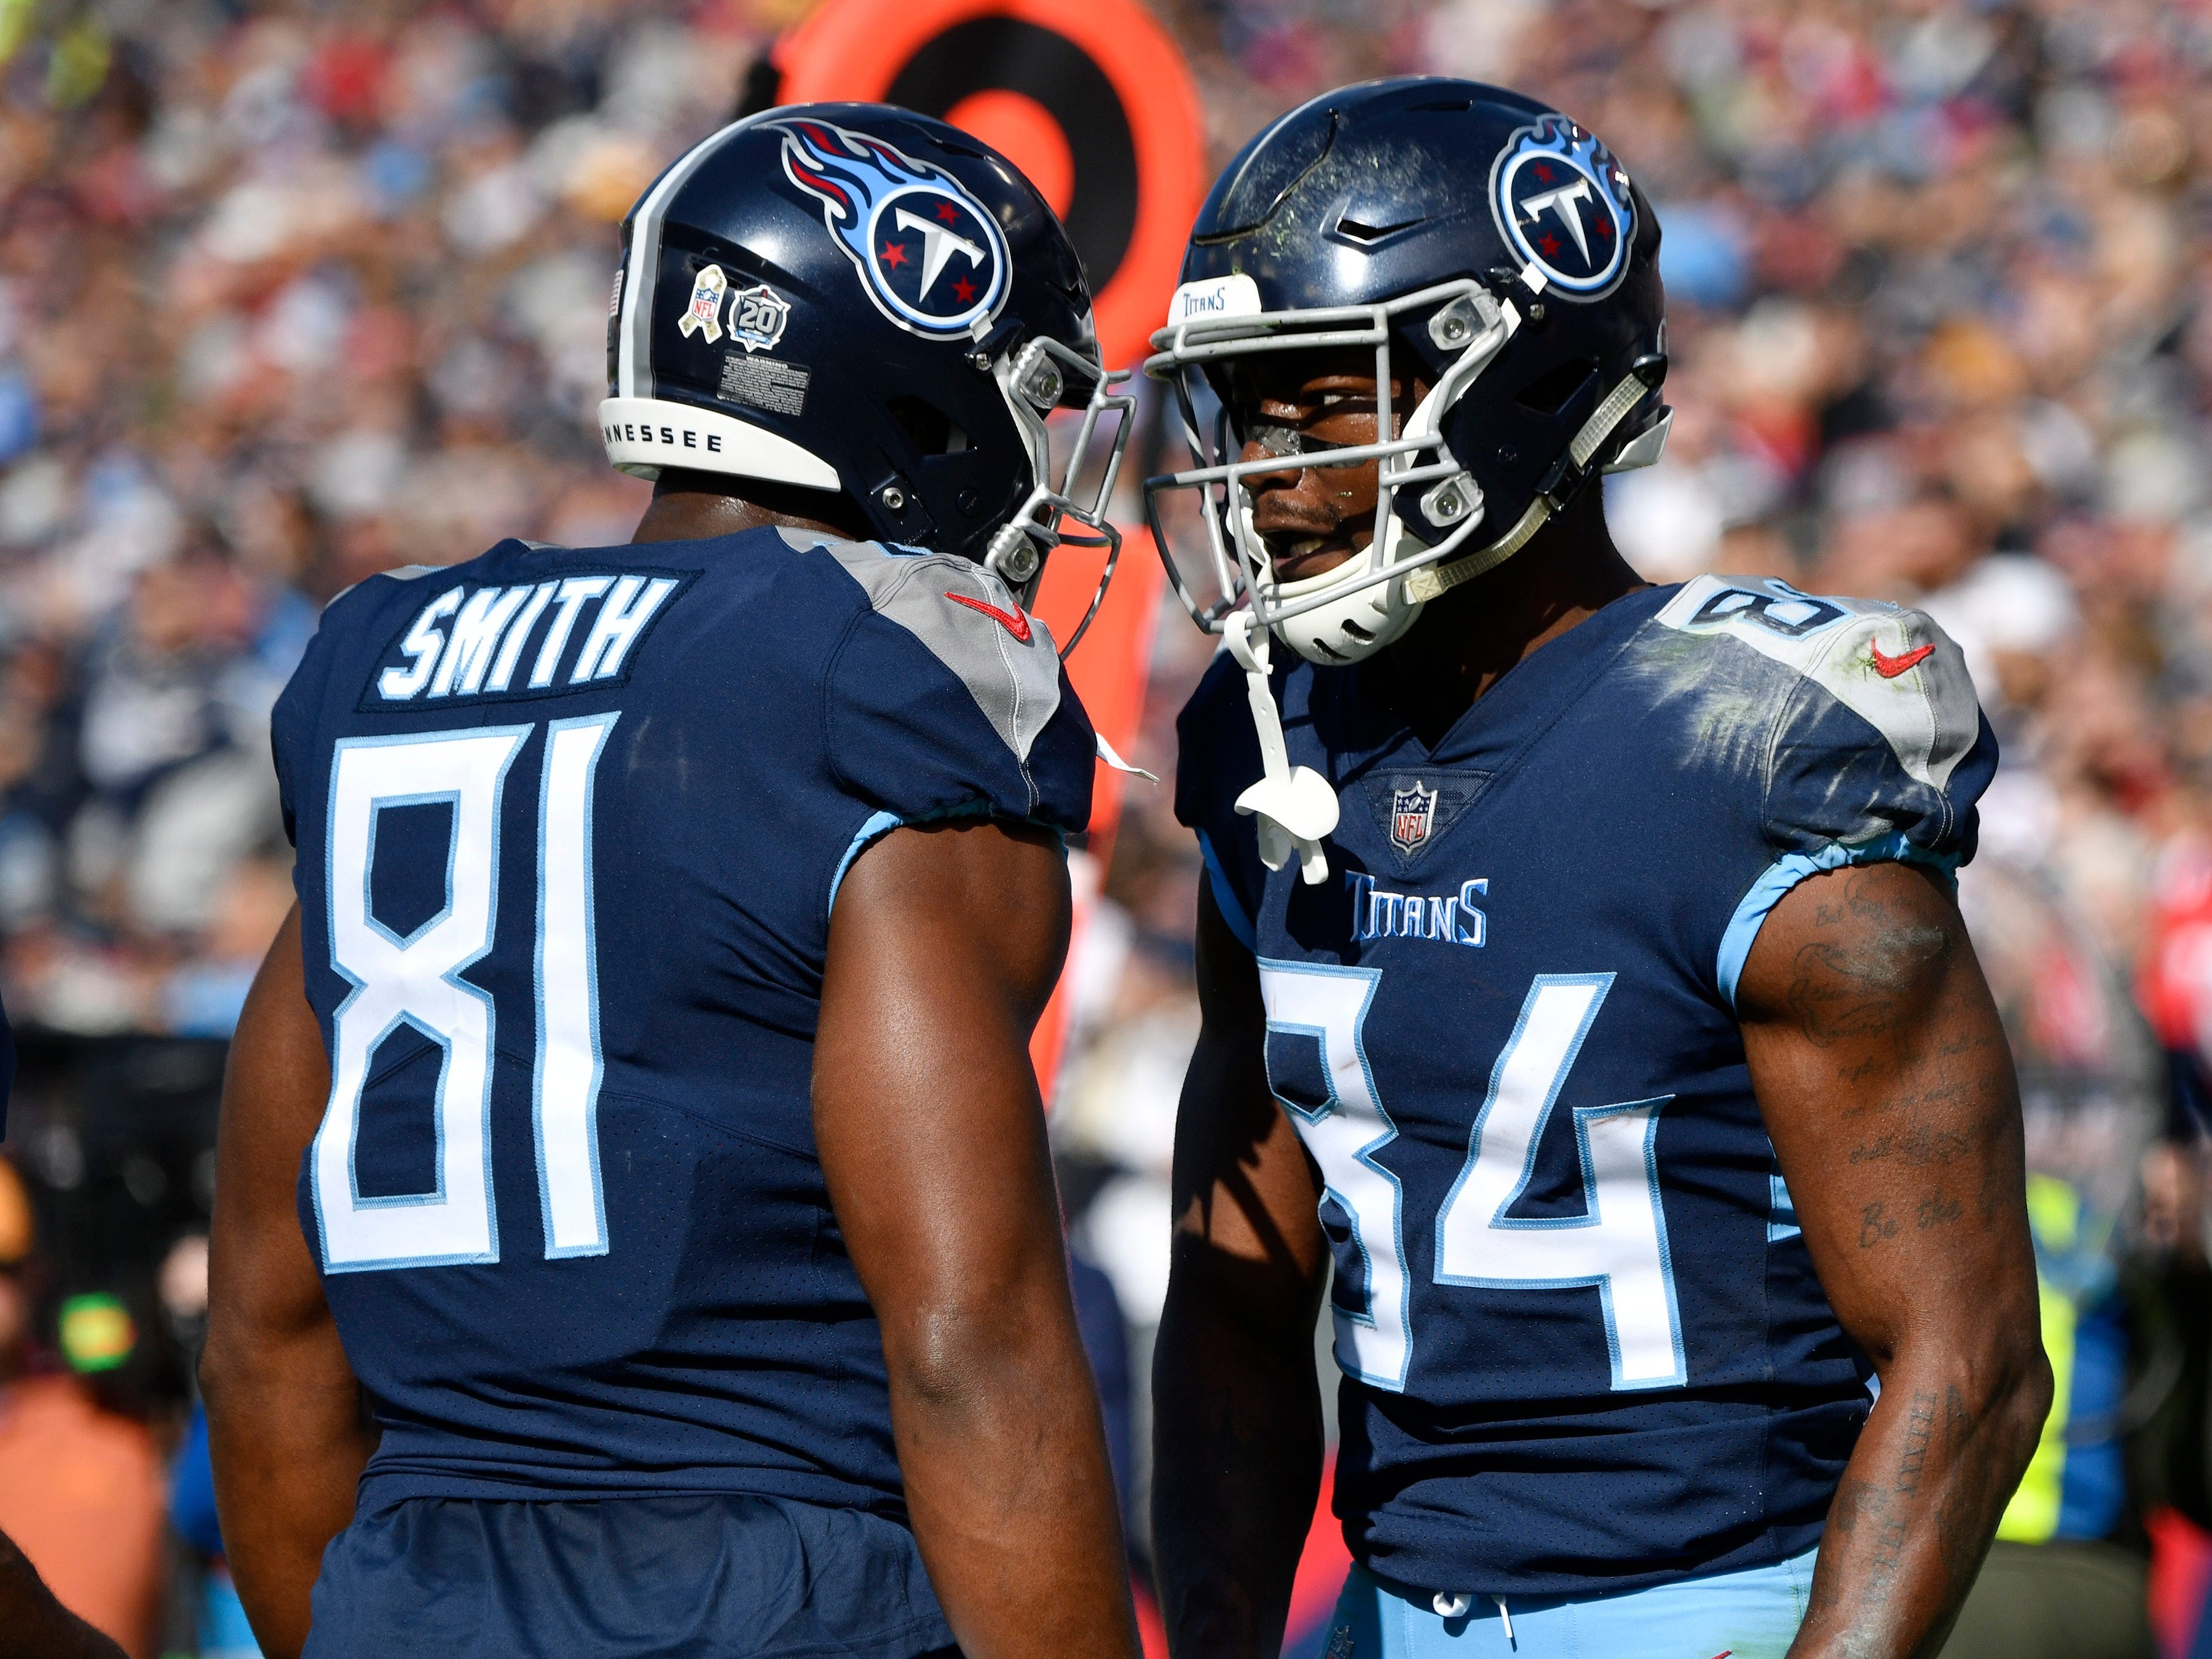 What to know about Titans-Colts in NFL Week 11